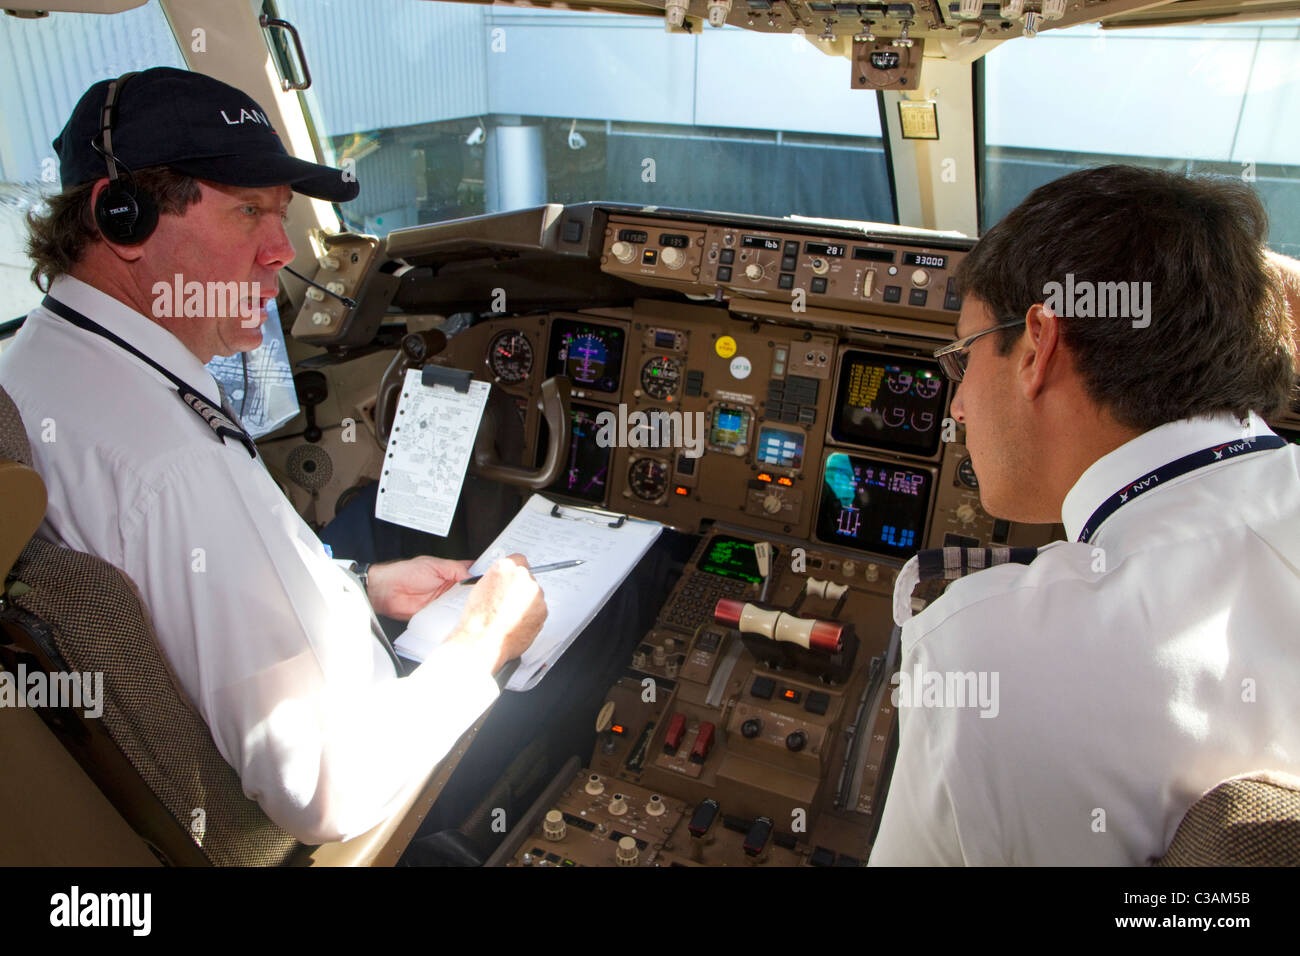 Pilot and first officer reviewing a pre-flight checklist in the cockpit of a Boeing 767 aircraft. - Stock Image